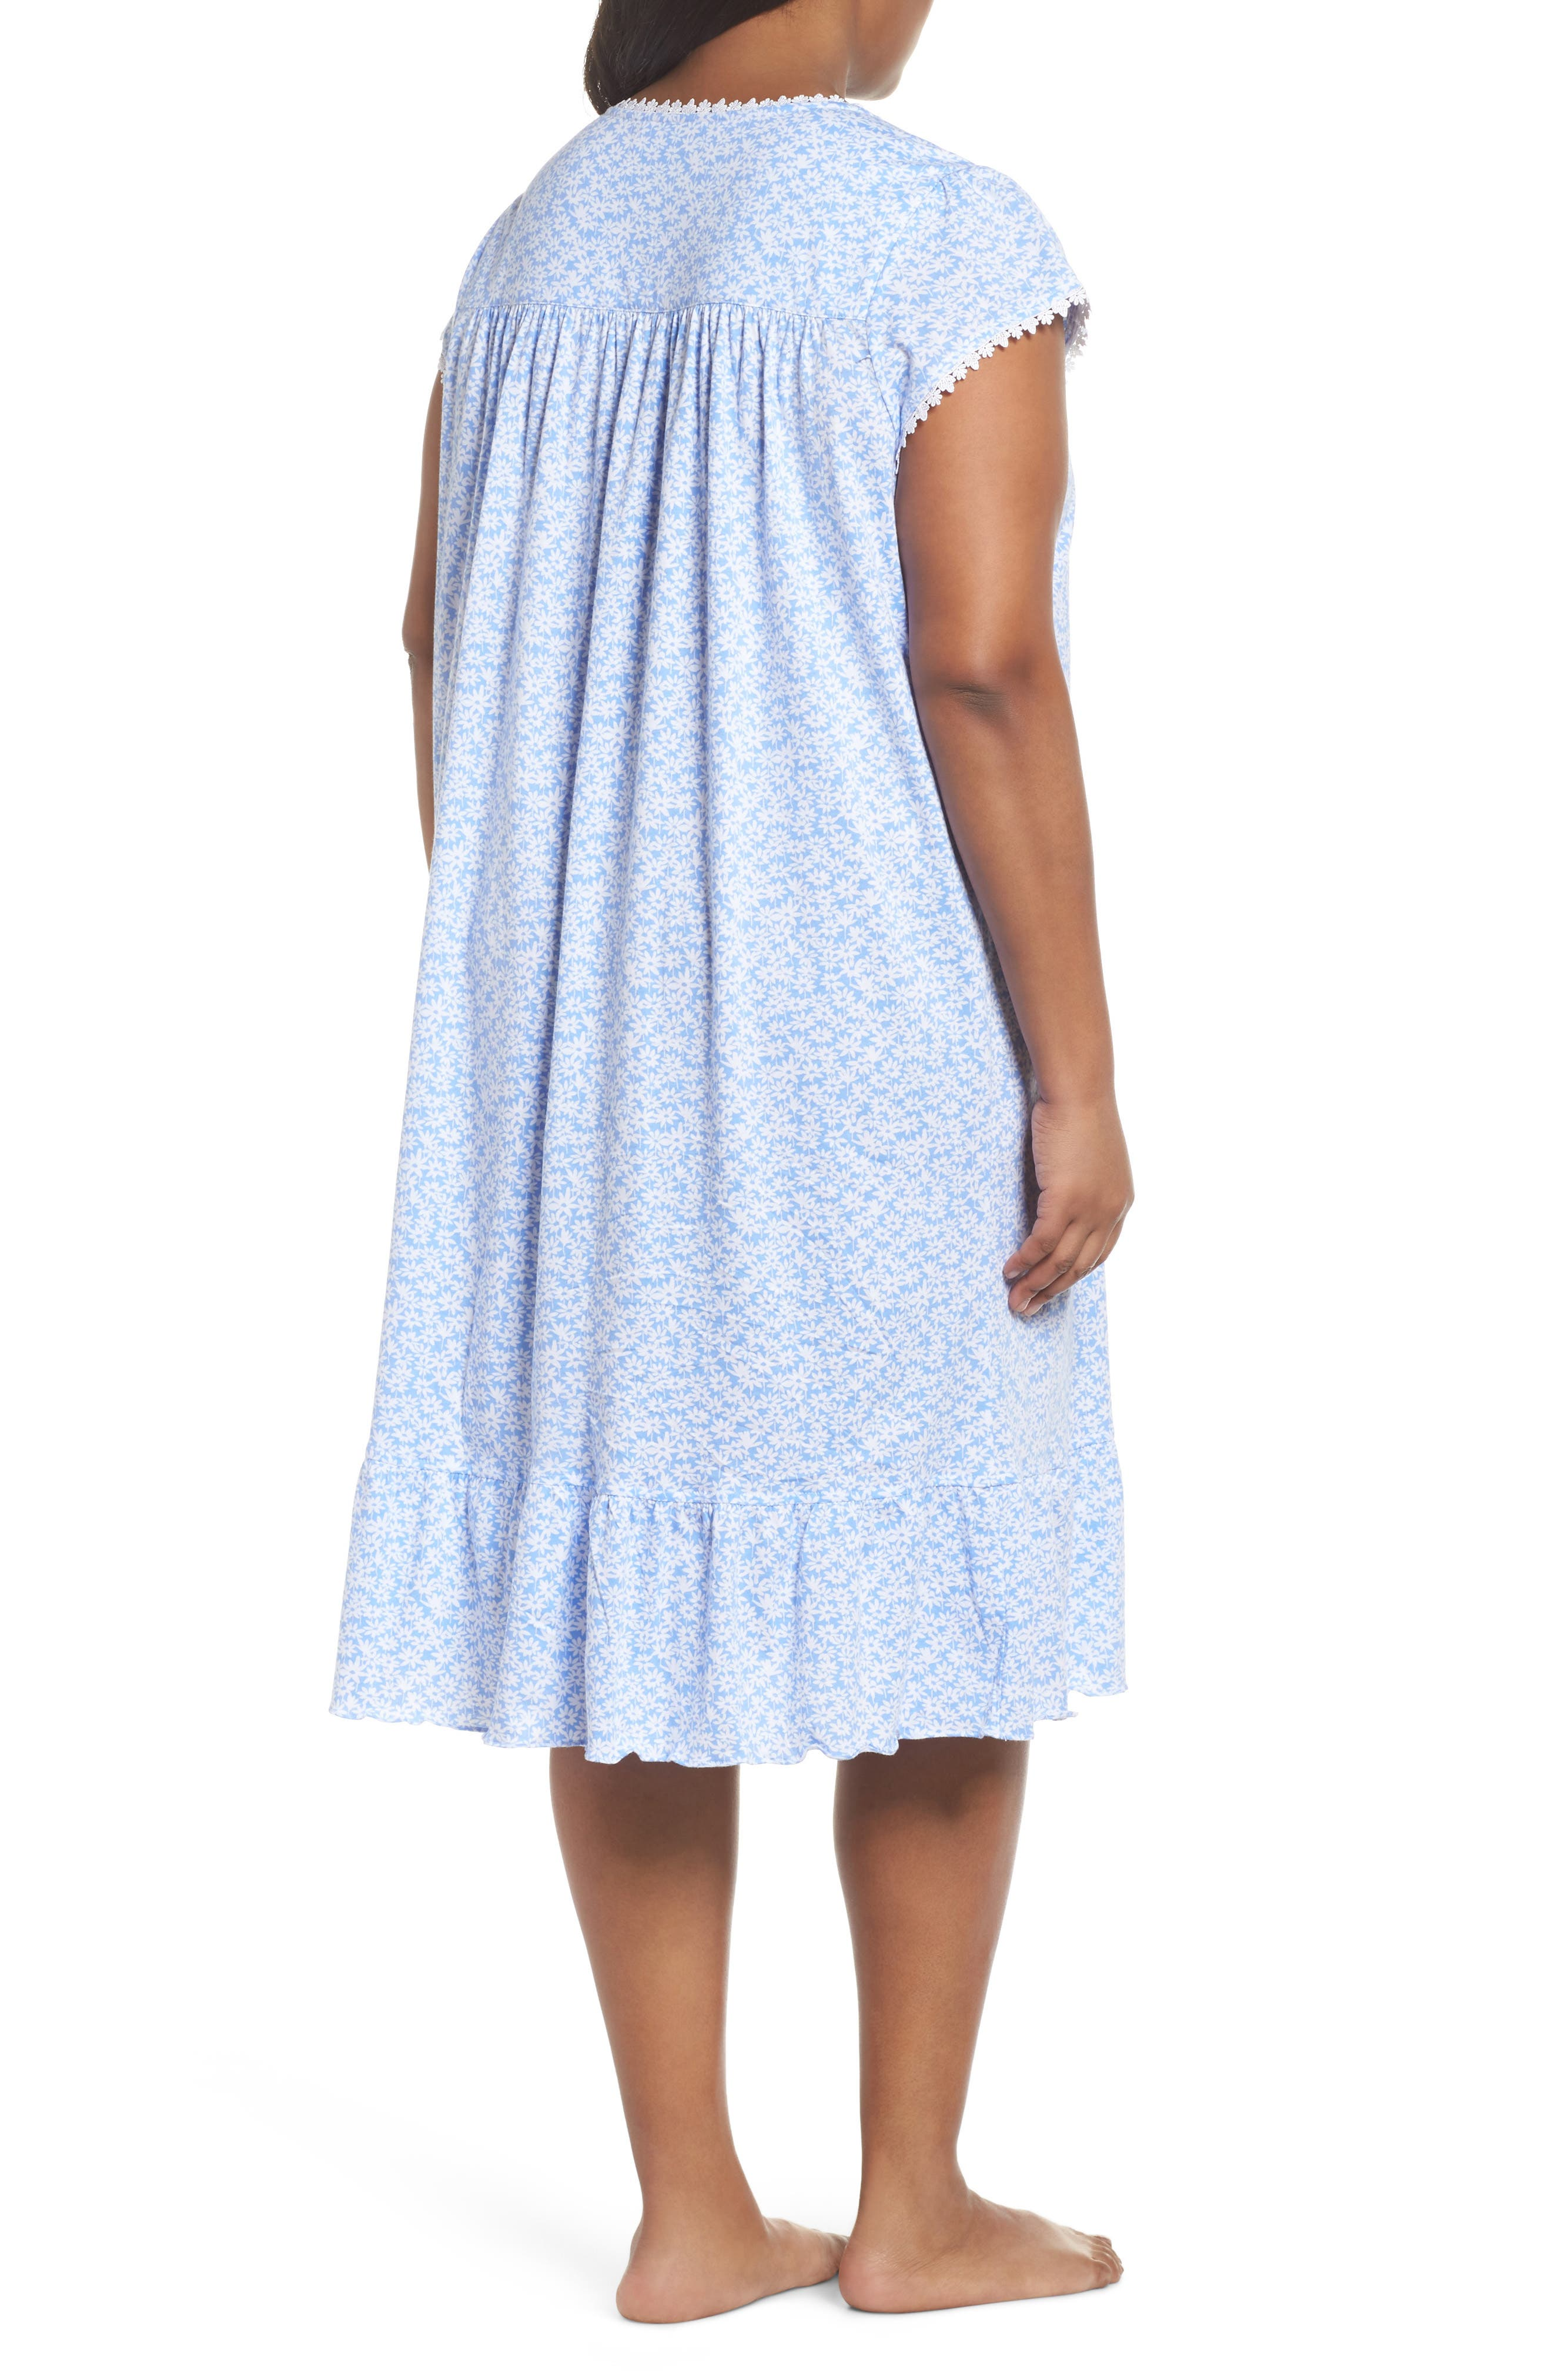 Cotton Jersey Waltz Nightgown,                             Alternate thumbnail 2, color,                             Blue White Daisies